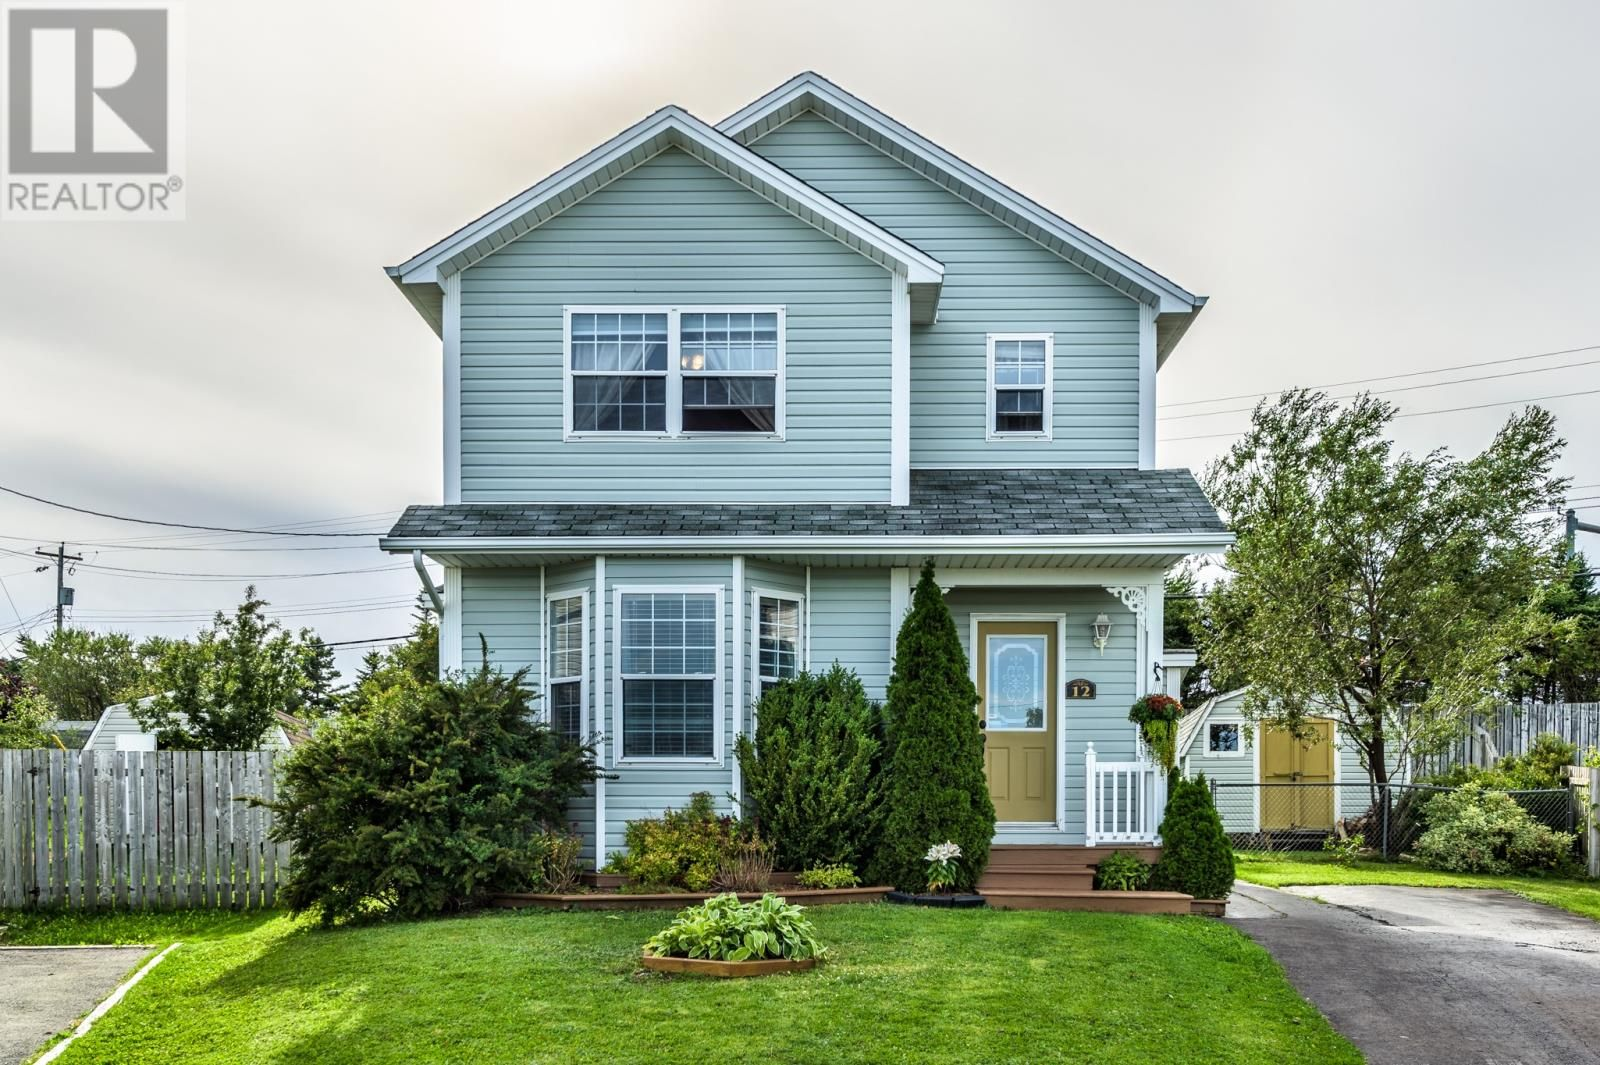 Main Photo: 12 Bettney Place in Mount Pearl: House for sale : MLS®# 1231380